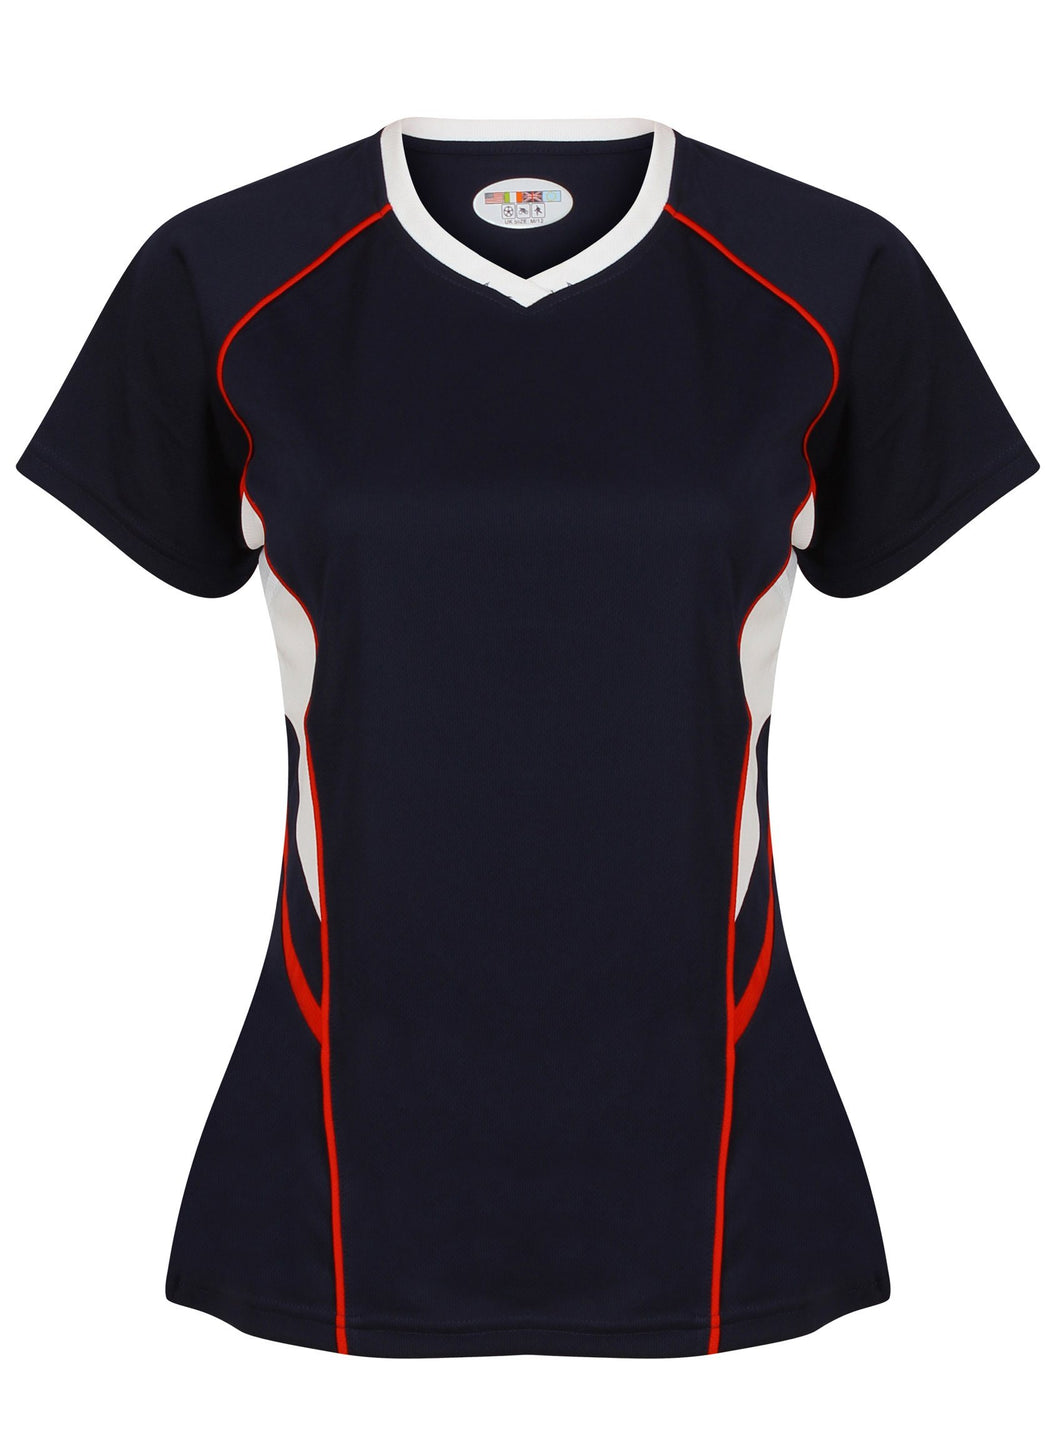 Jenny Ladies Fitted Top Gazelle Sports UK Yes XS/8 Col A) Navy/ White/ Red